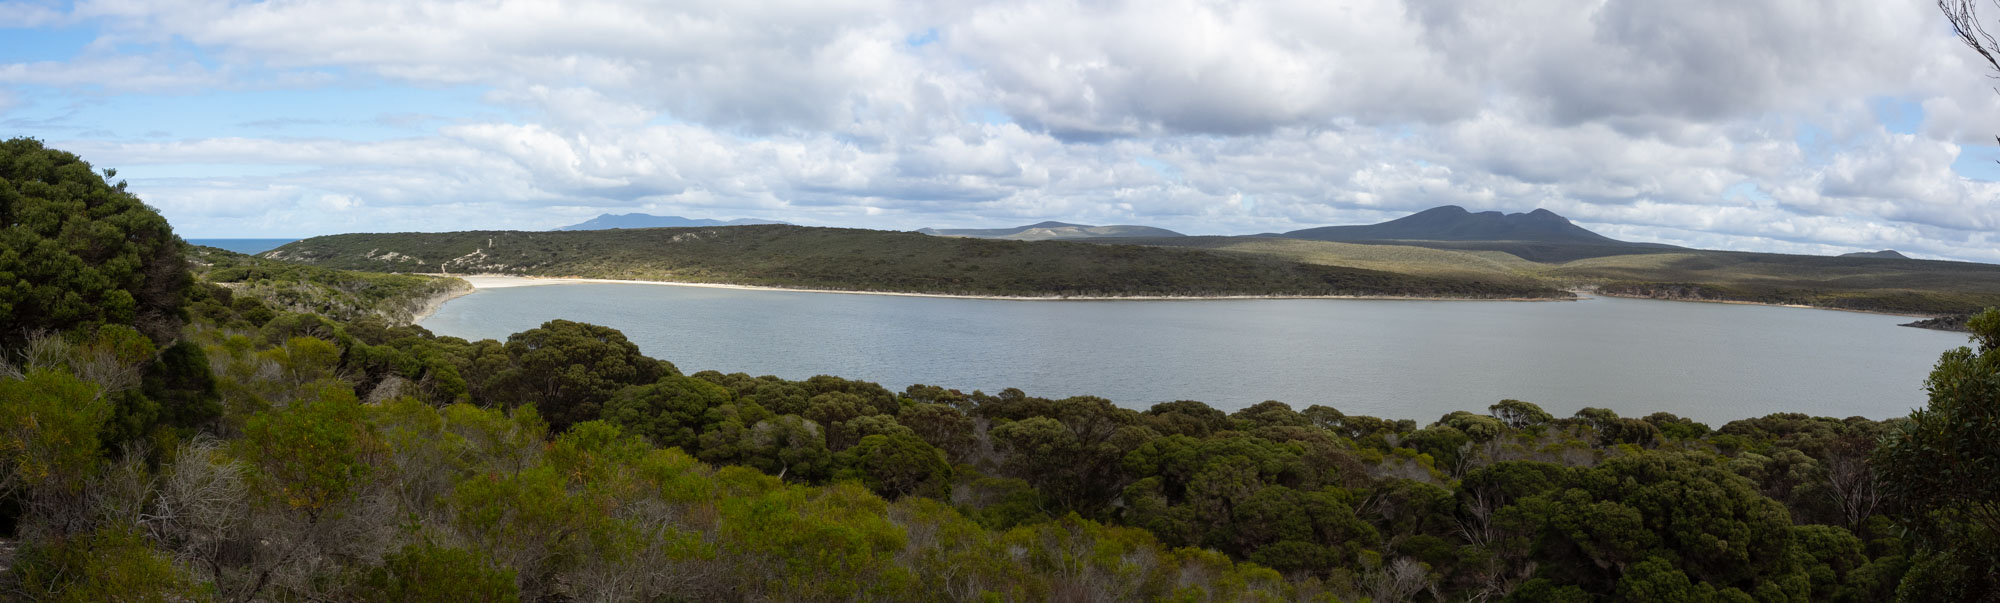 Hamersley Inlet, looking west from a ridge just above the campground